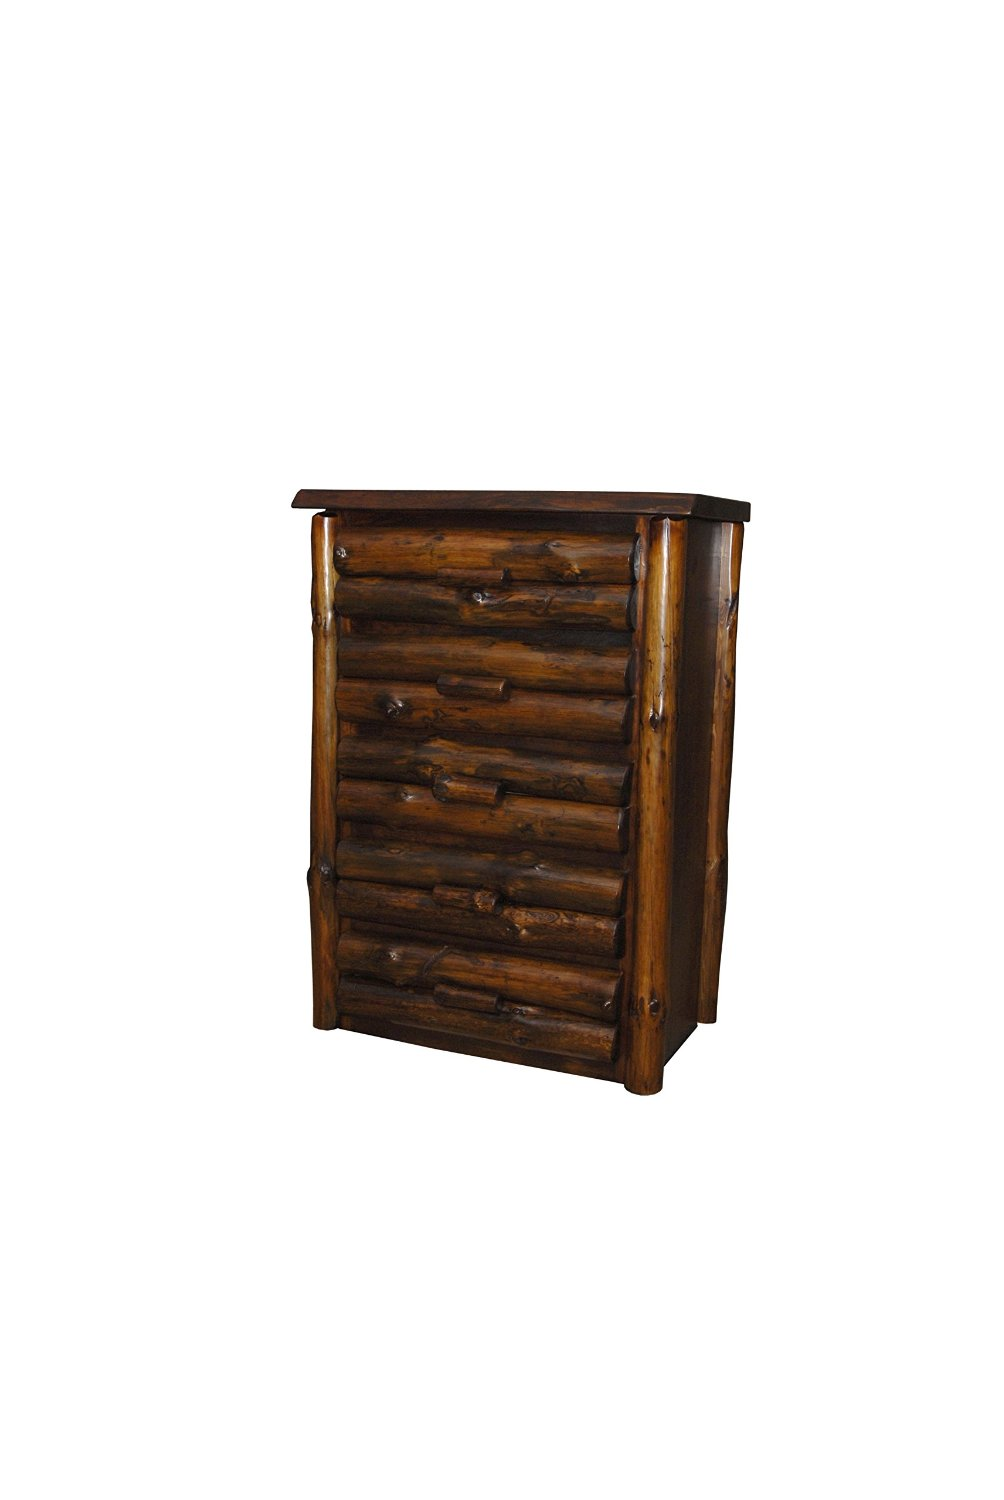 Rustic Pine Half Log Drawer Chest *AVAILABLE IN 3 SIZES* (Clear Varnish, 5 Drawer)